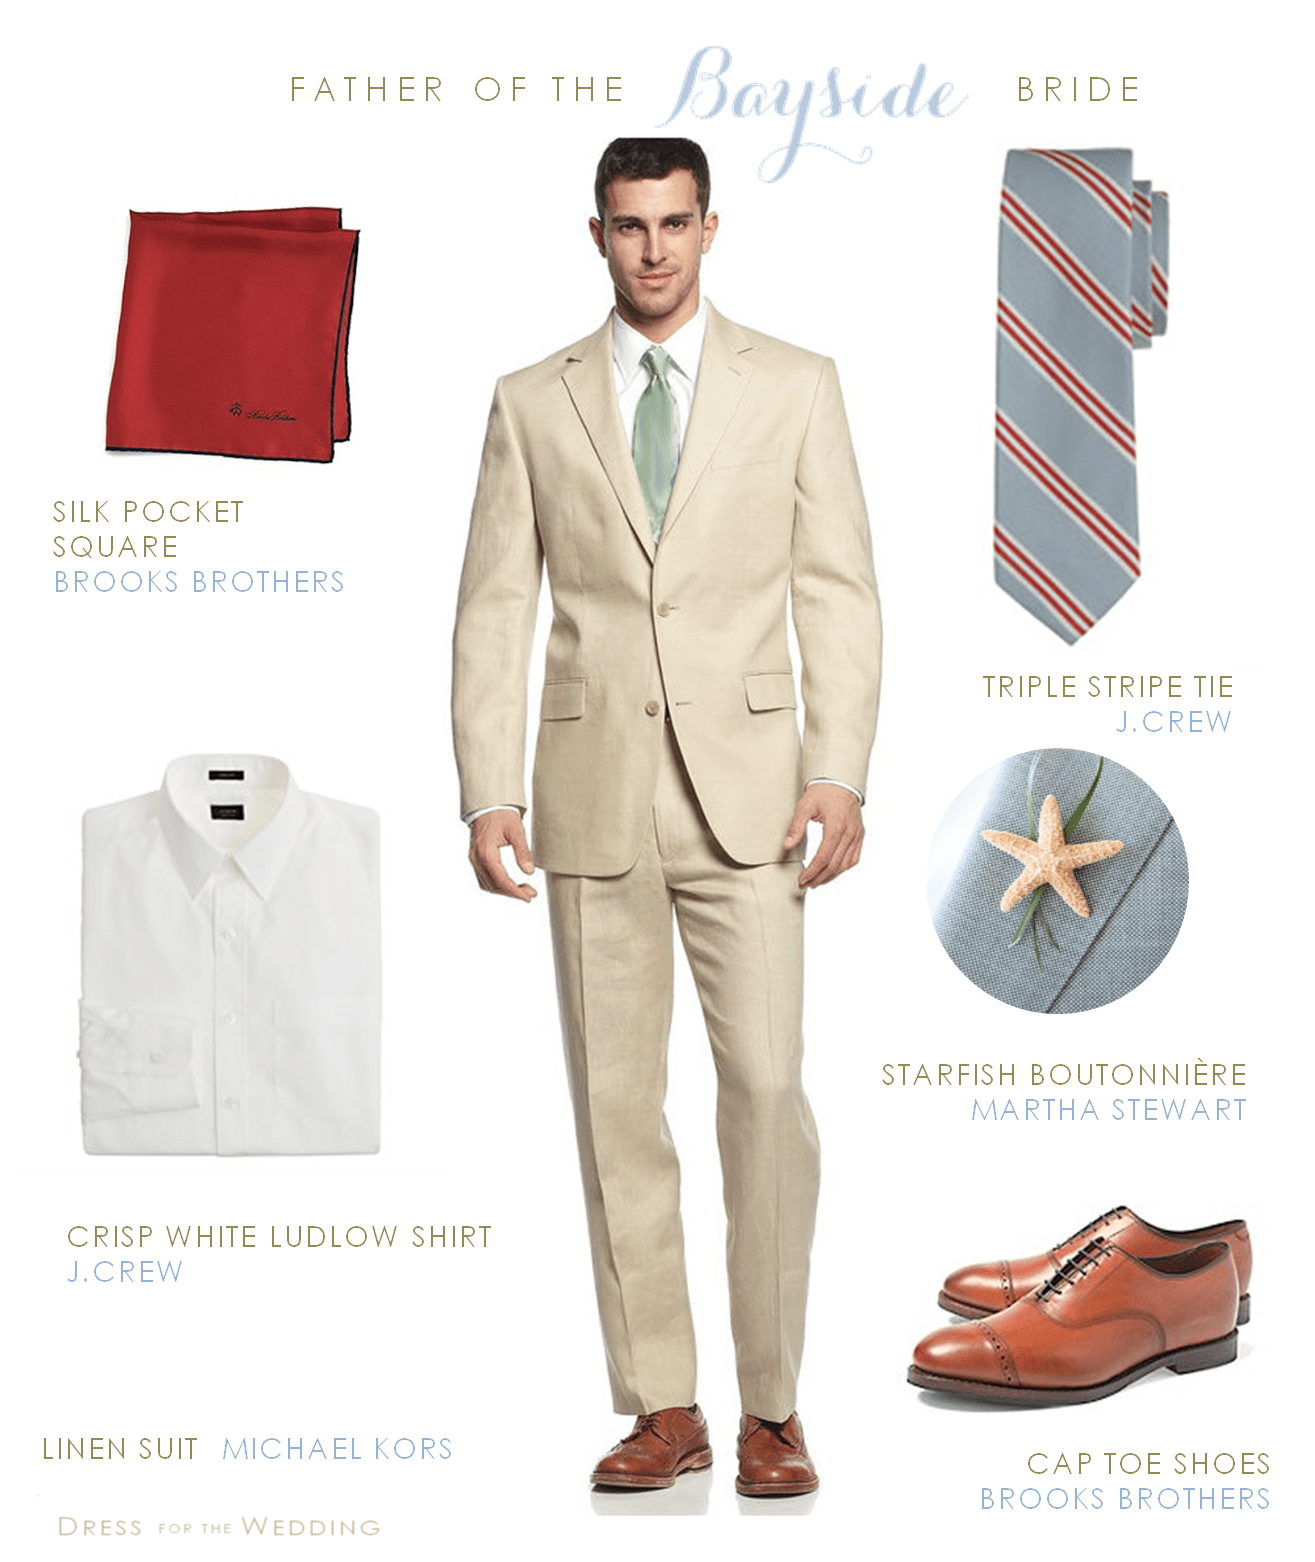 Tan Linen Suit for Grooms and Groomsmen